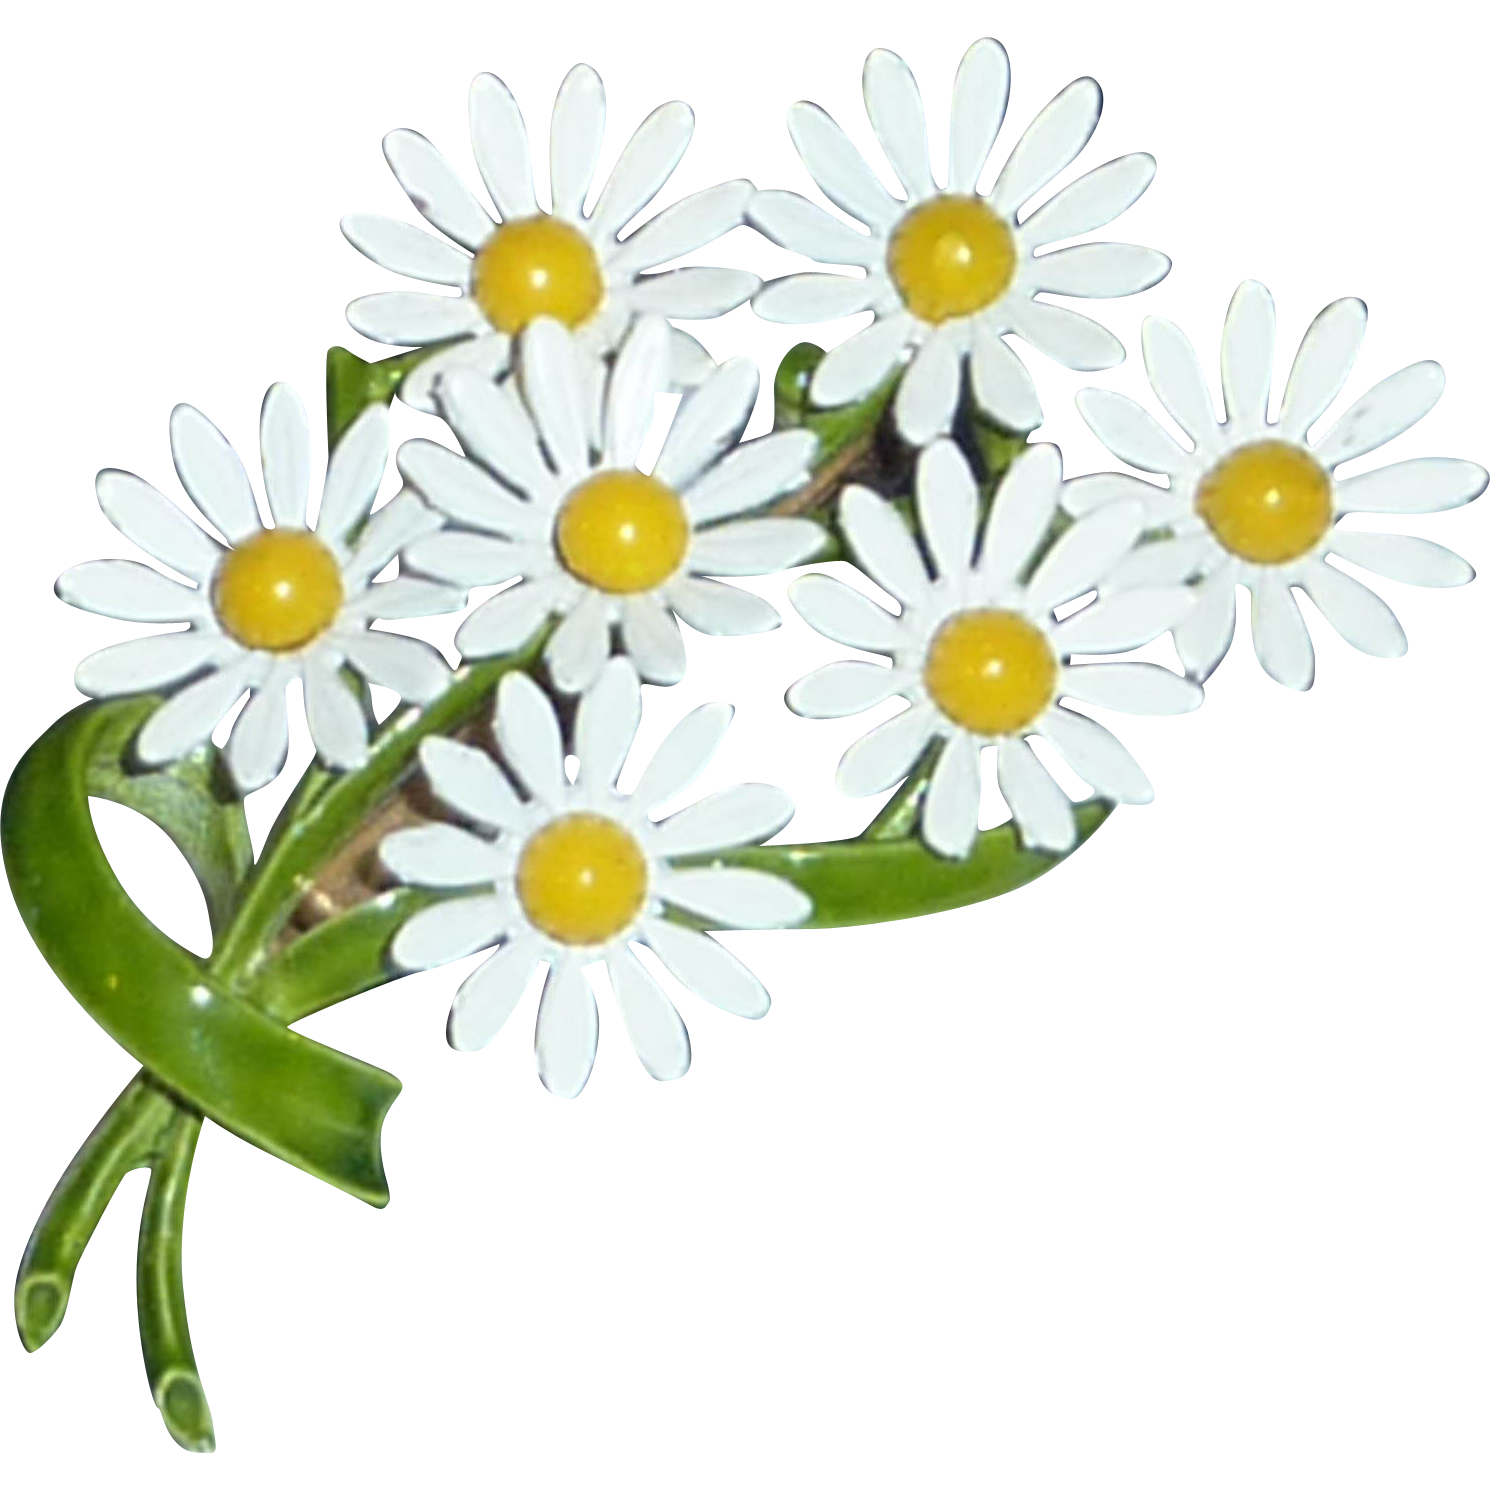 Daisy clipart daisy bouquet. Free png image arts